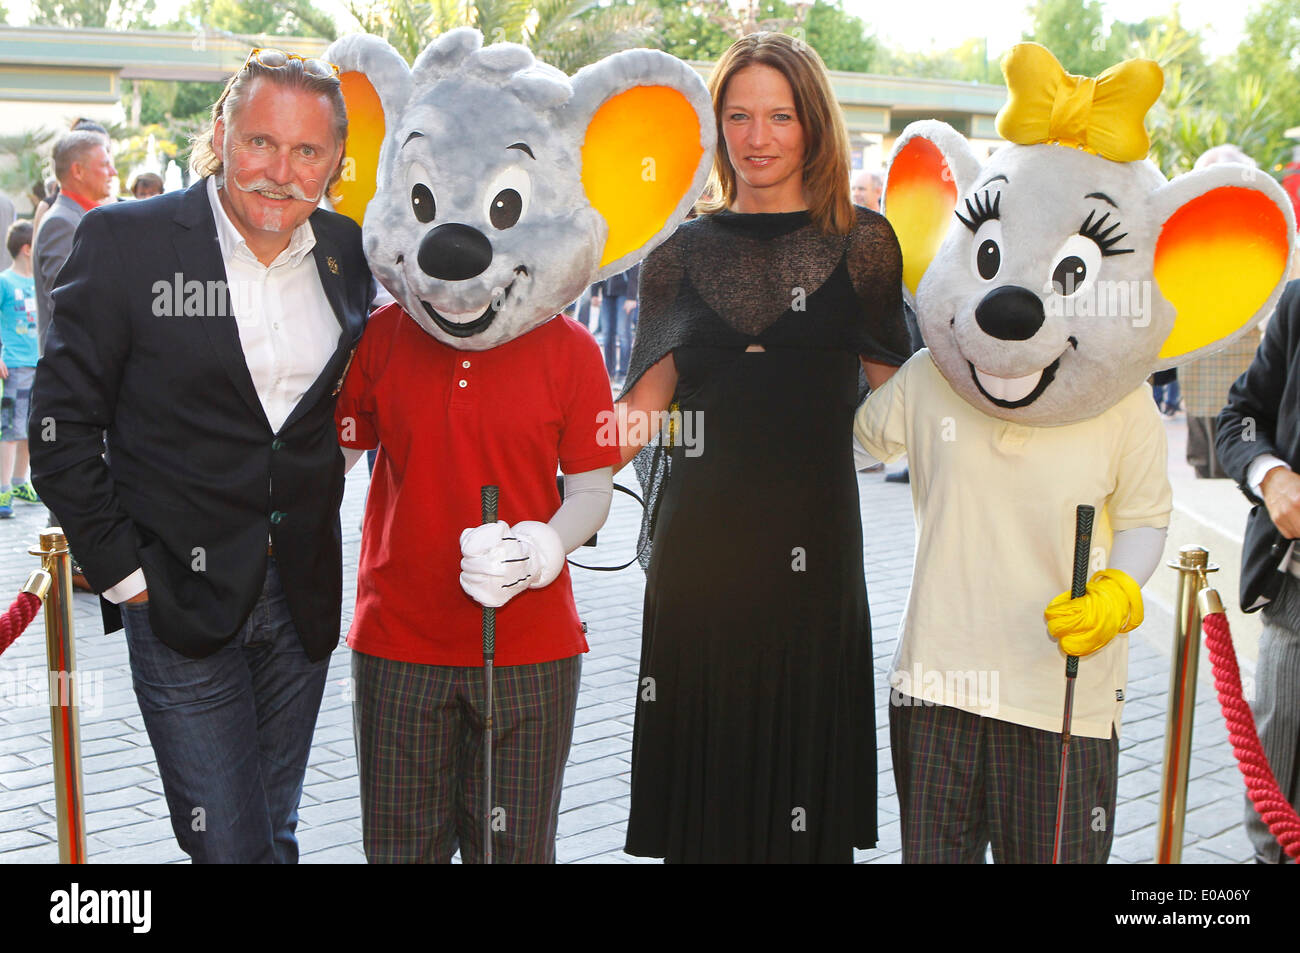 Herbolzheim, Germany - May 5, 2014: Eagles Charity Golf Cup and Gala at Golfclub Breisgau and Europa Park, Rust with Attorney and Actor Ingo Lenssen and Sport Commentator Jana Thiel Credit:  dpa picture alliance/Alamy Live News - Stock Image